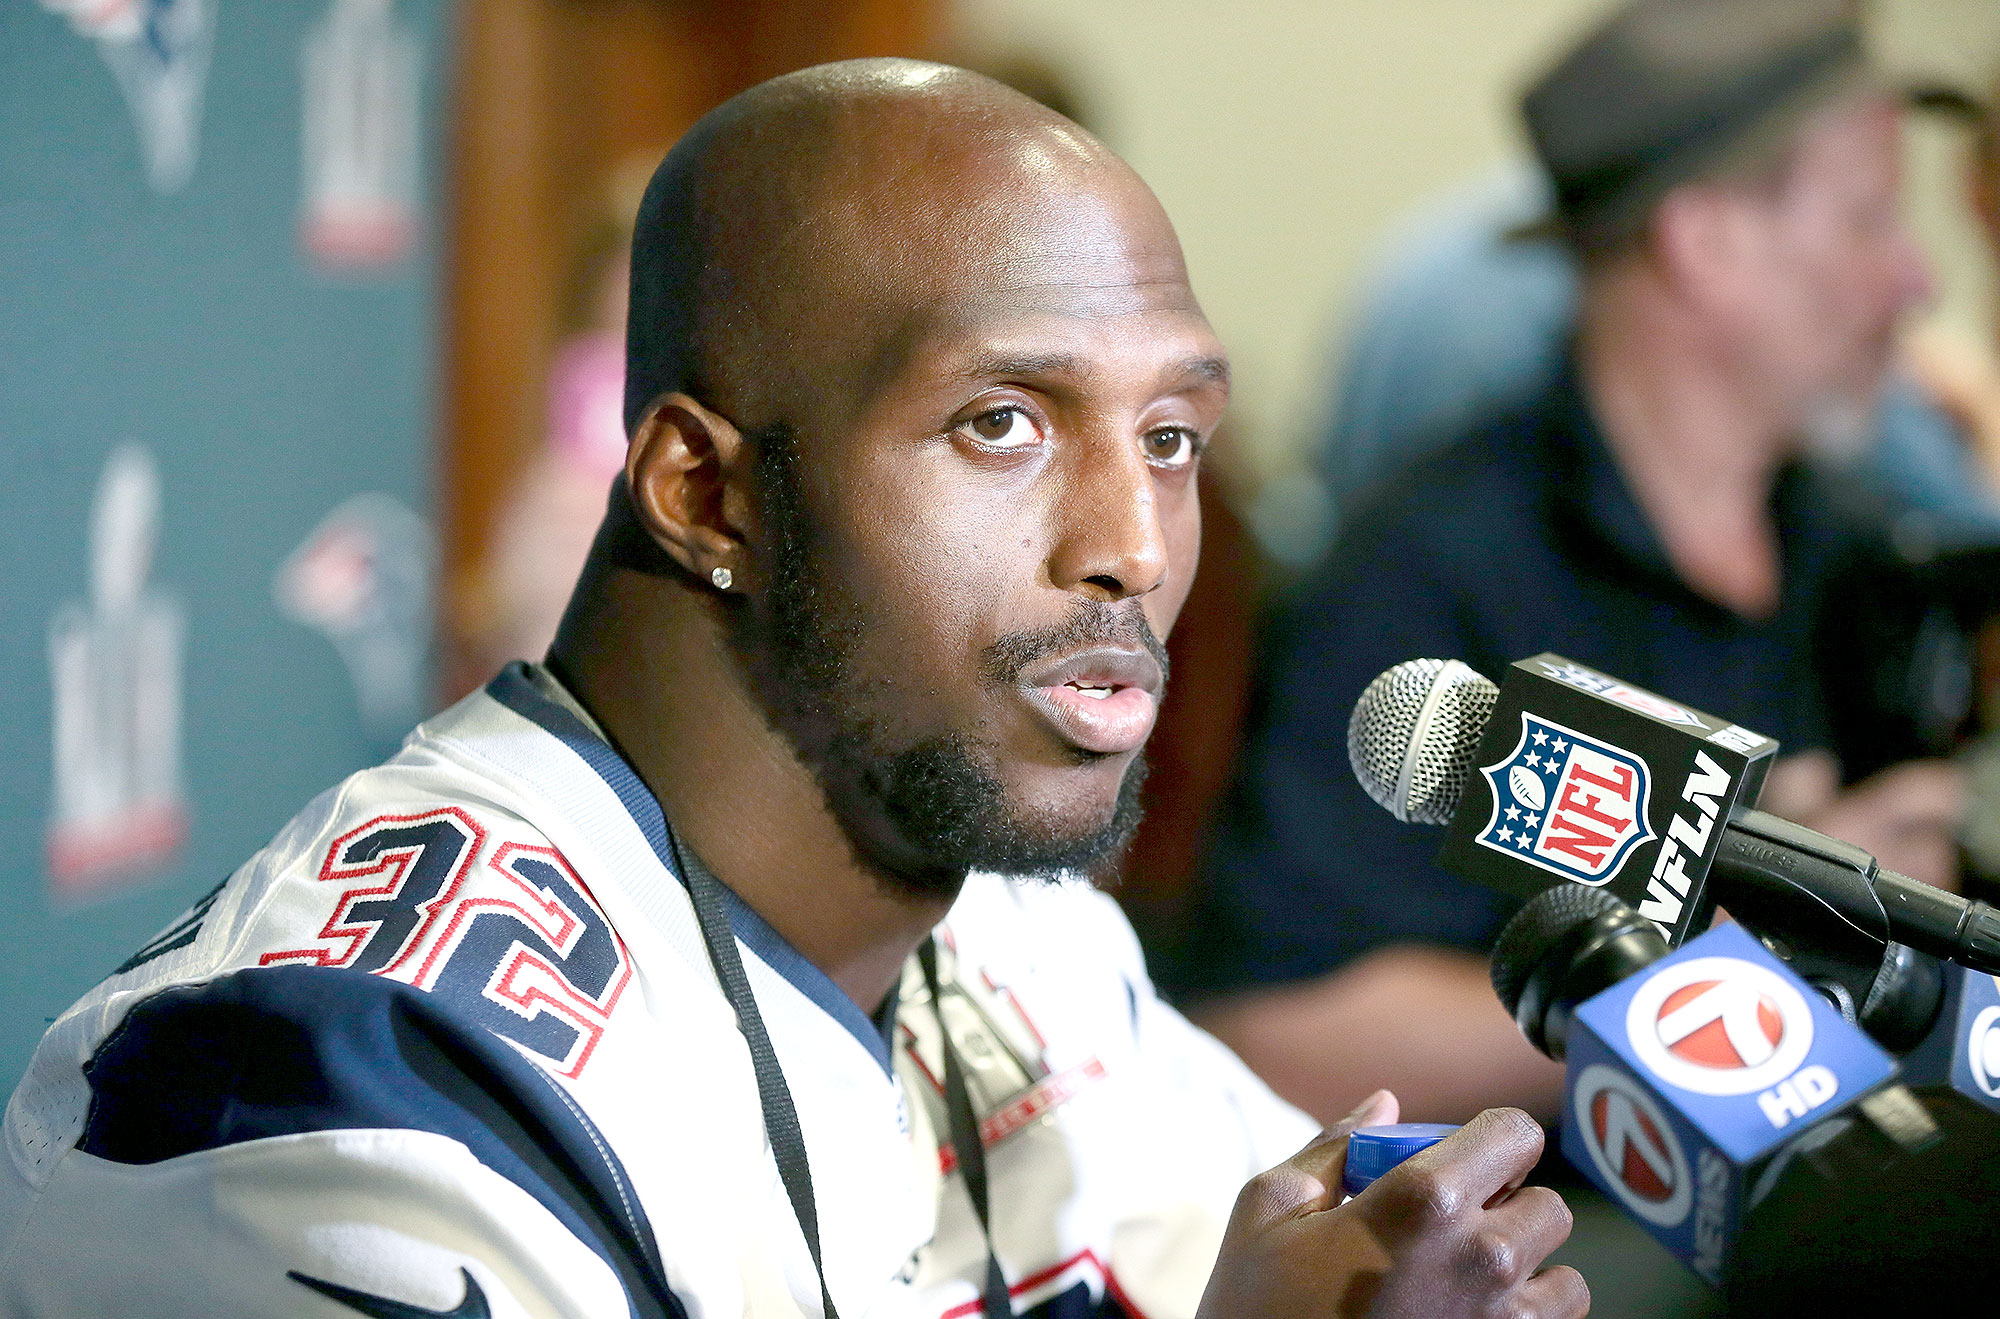 Devin McCourty #32 of the New England Patriots answers questions during Super Bowl LI media availability at the J.W. Marriott on February 2, 2017 in Houston, Texas.